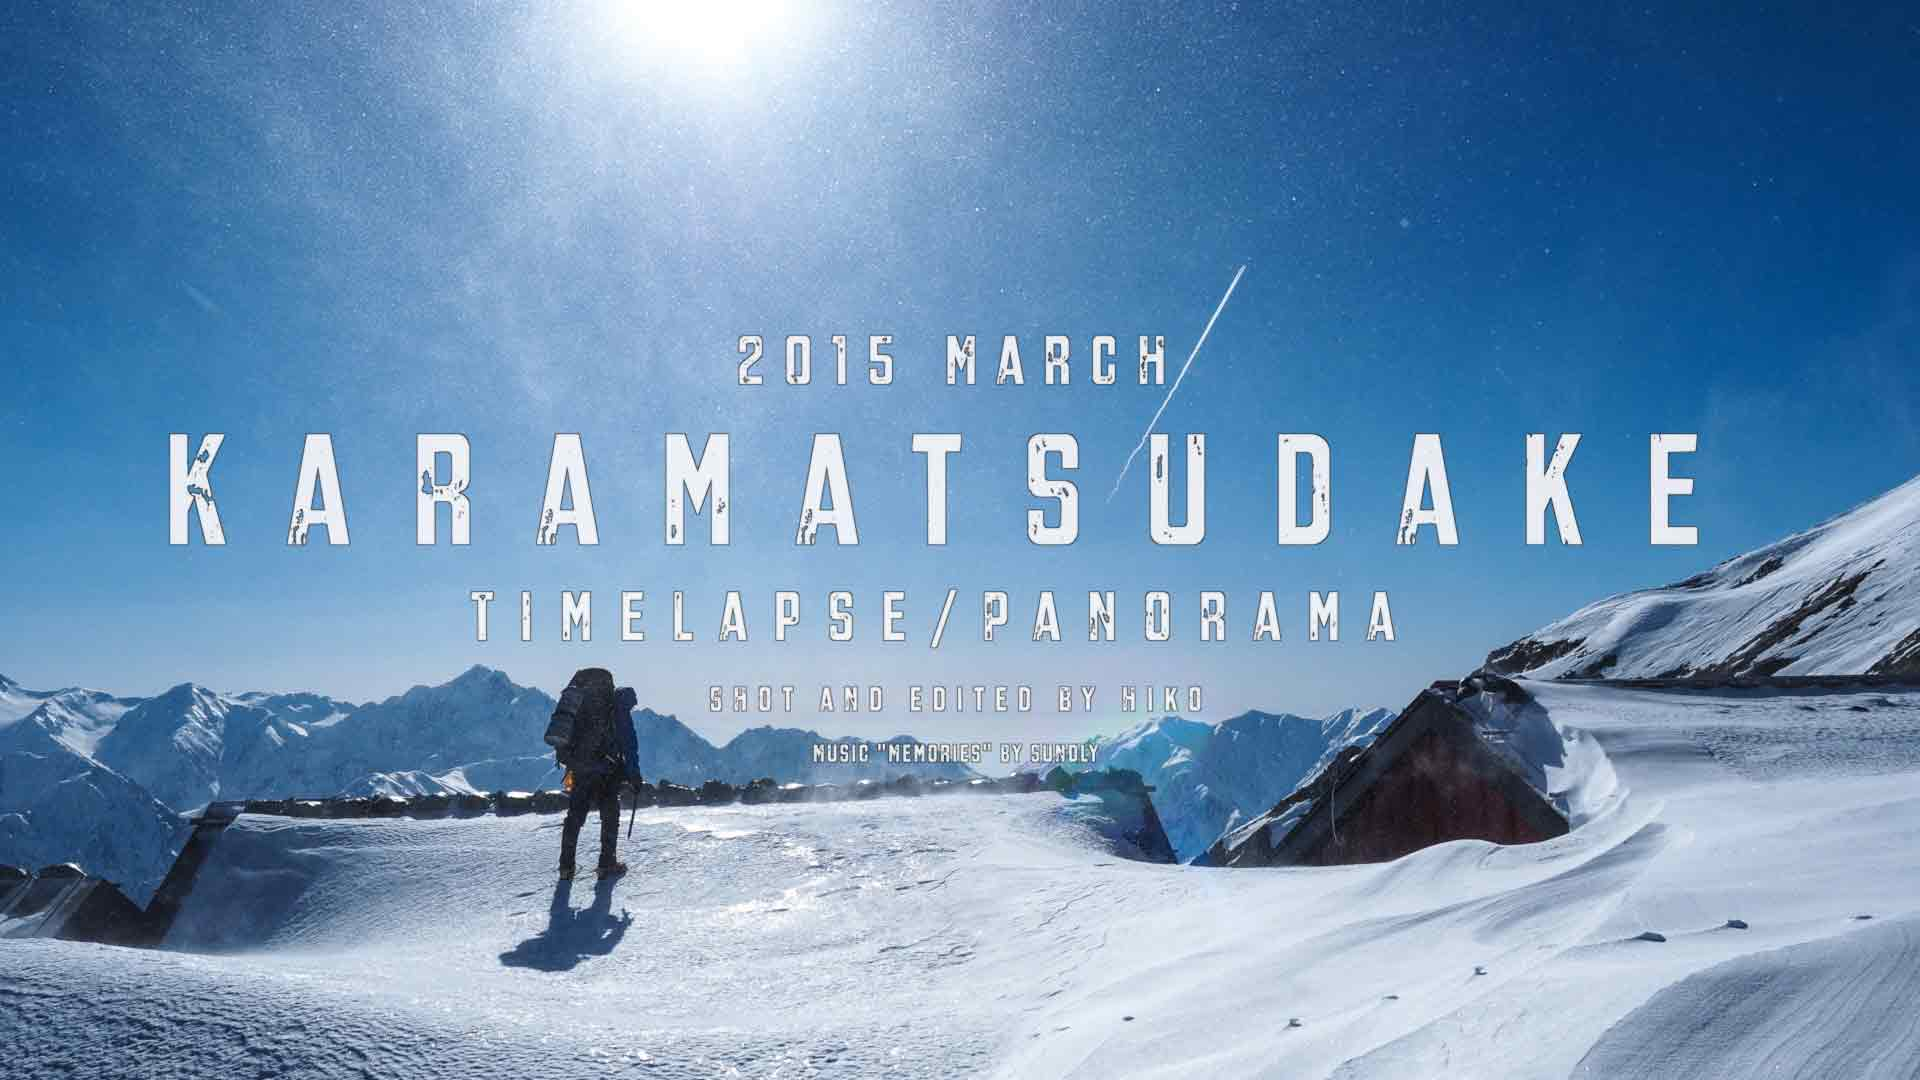 Karamatsudake-Timelapse-and-Panorama-Featured-Image